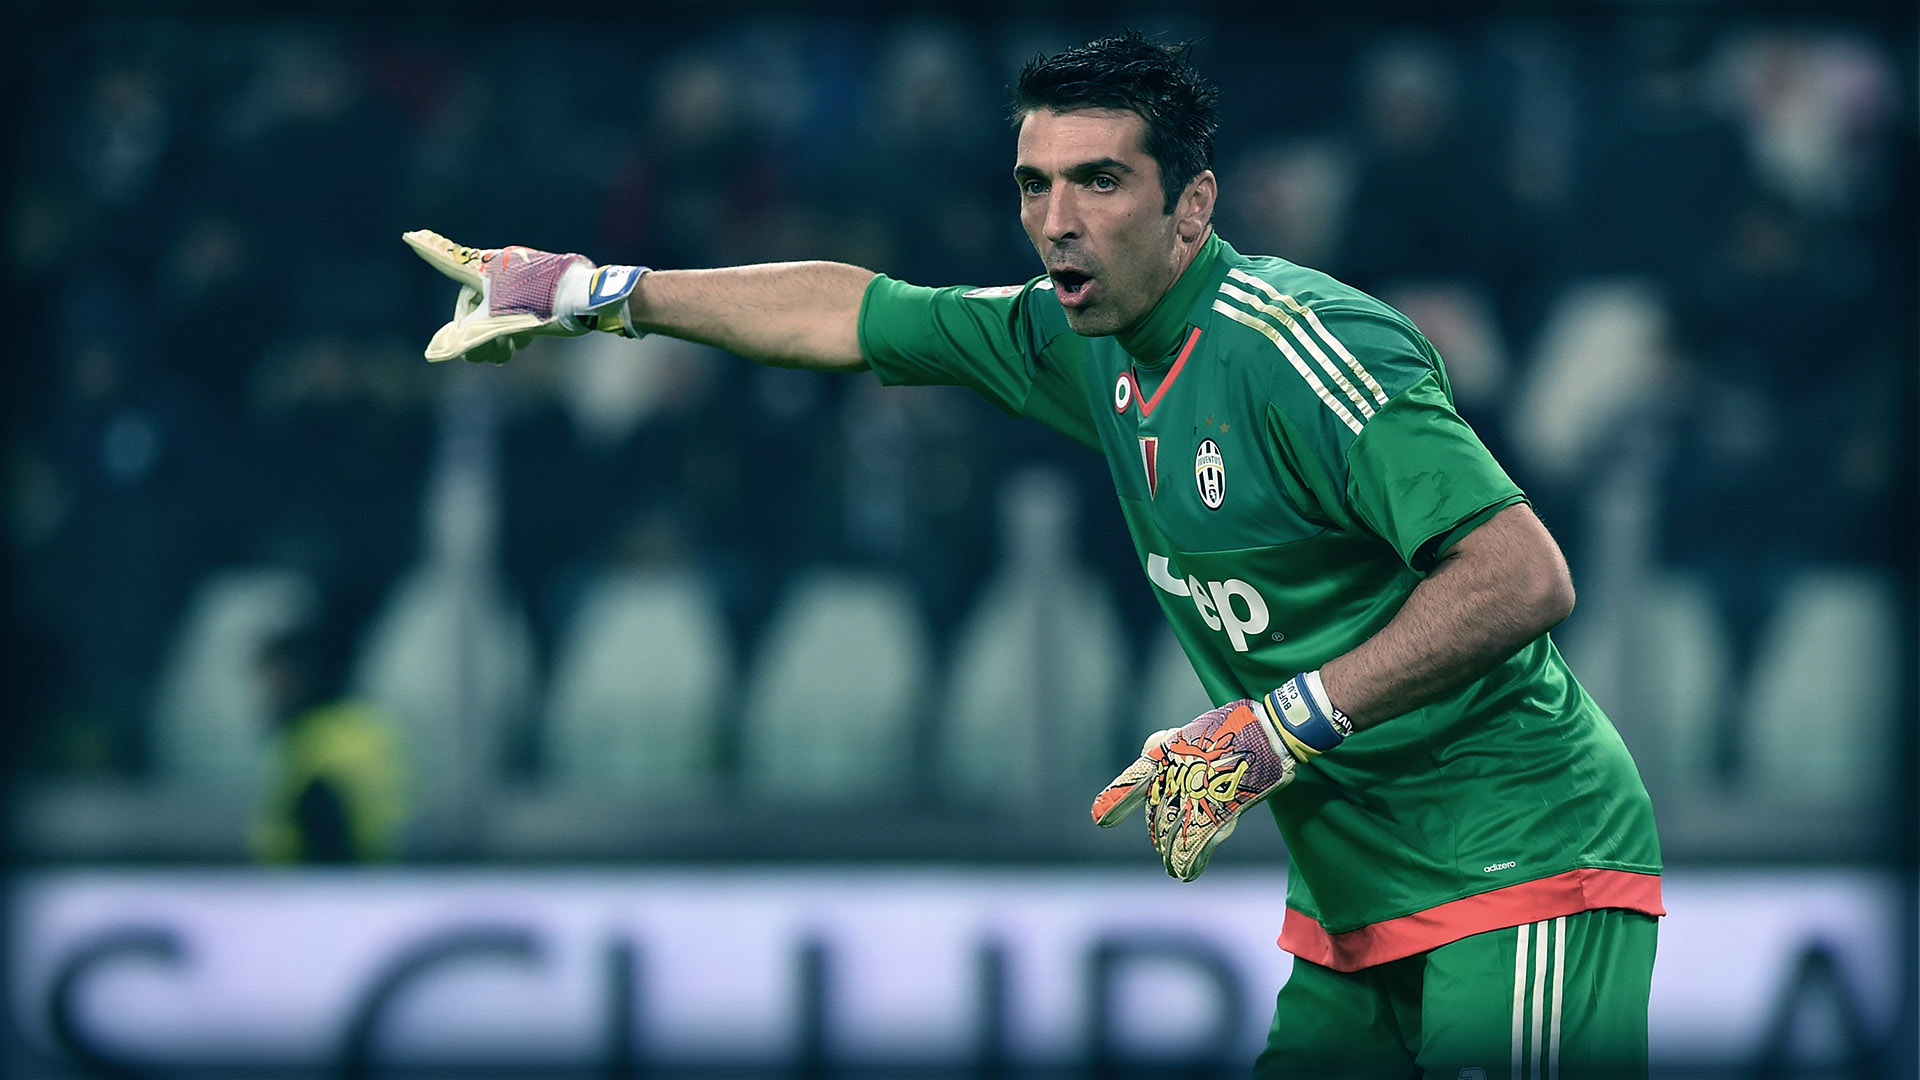 best wallpaper buffon - photo #13